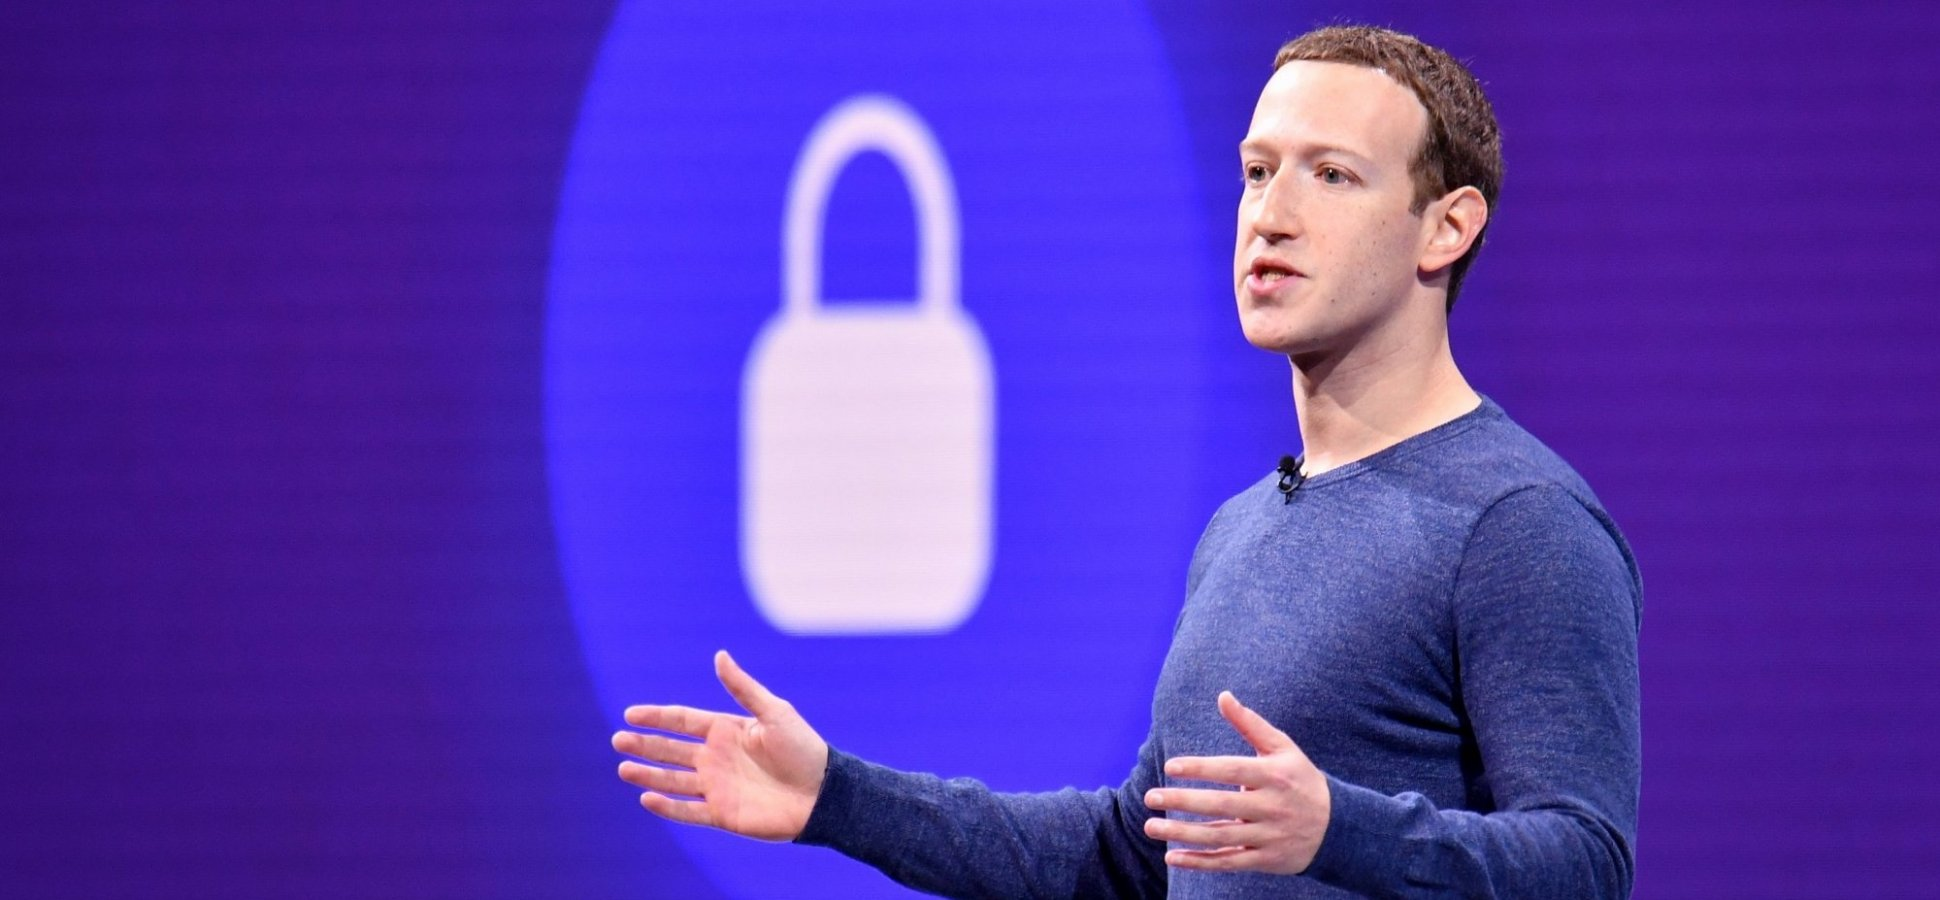 Facebook Can Track Your Location Even When the App Is Turned Off. Here's How to Stop It